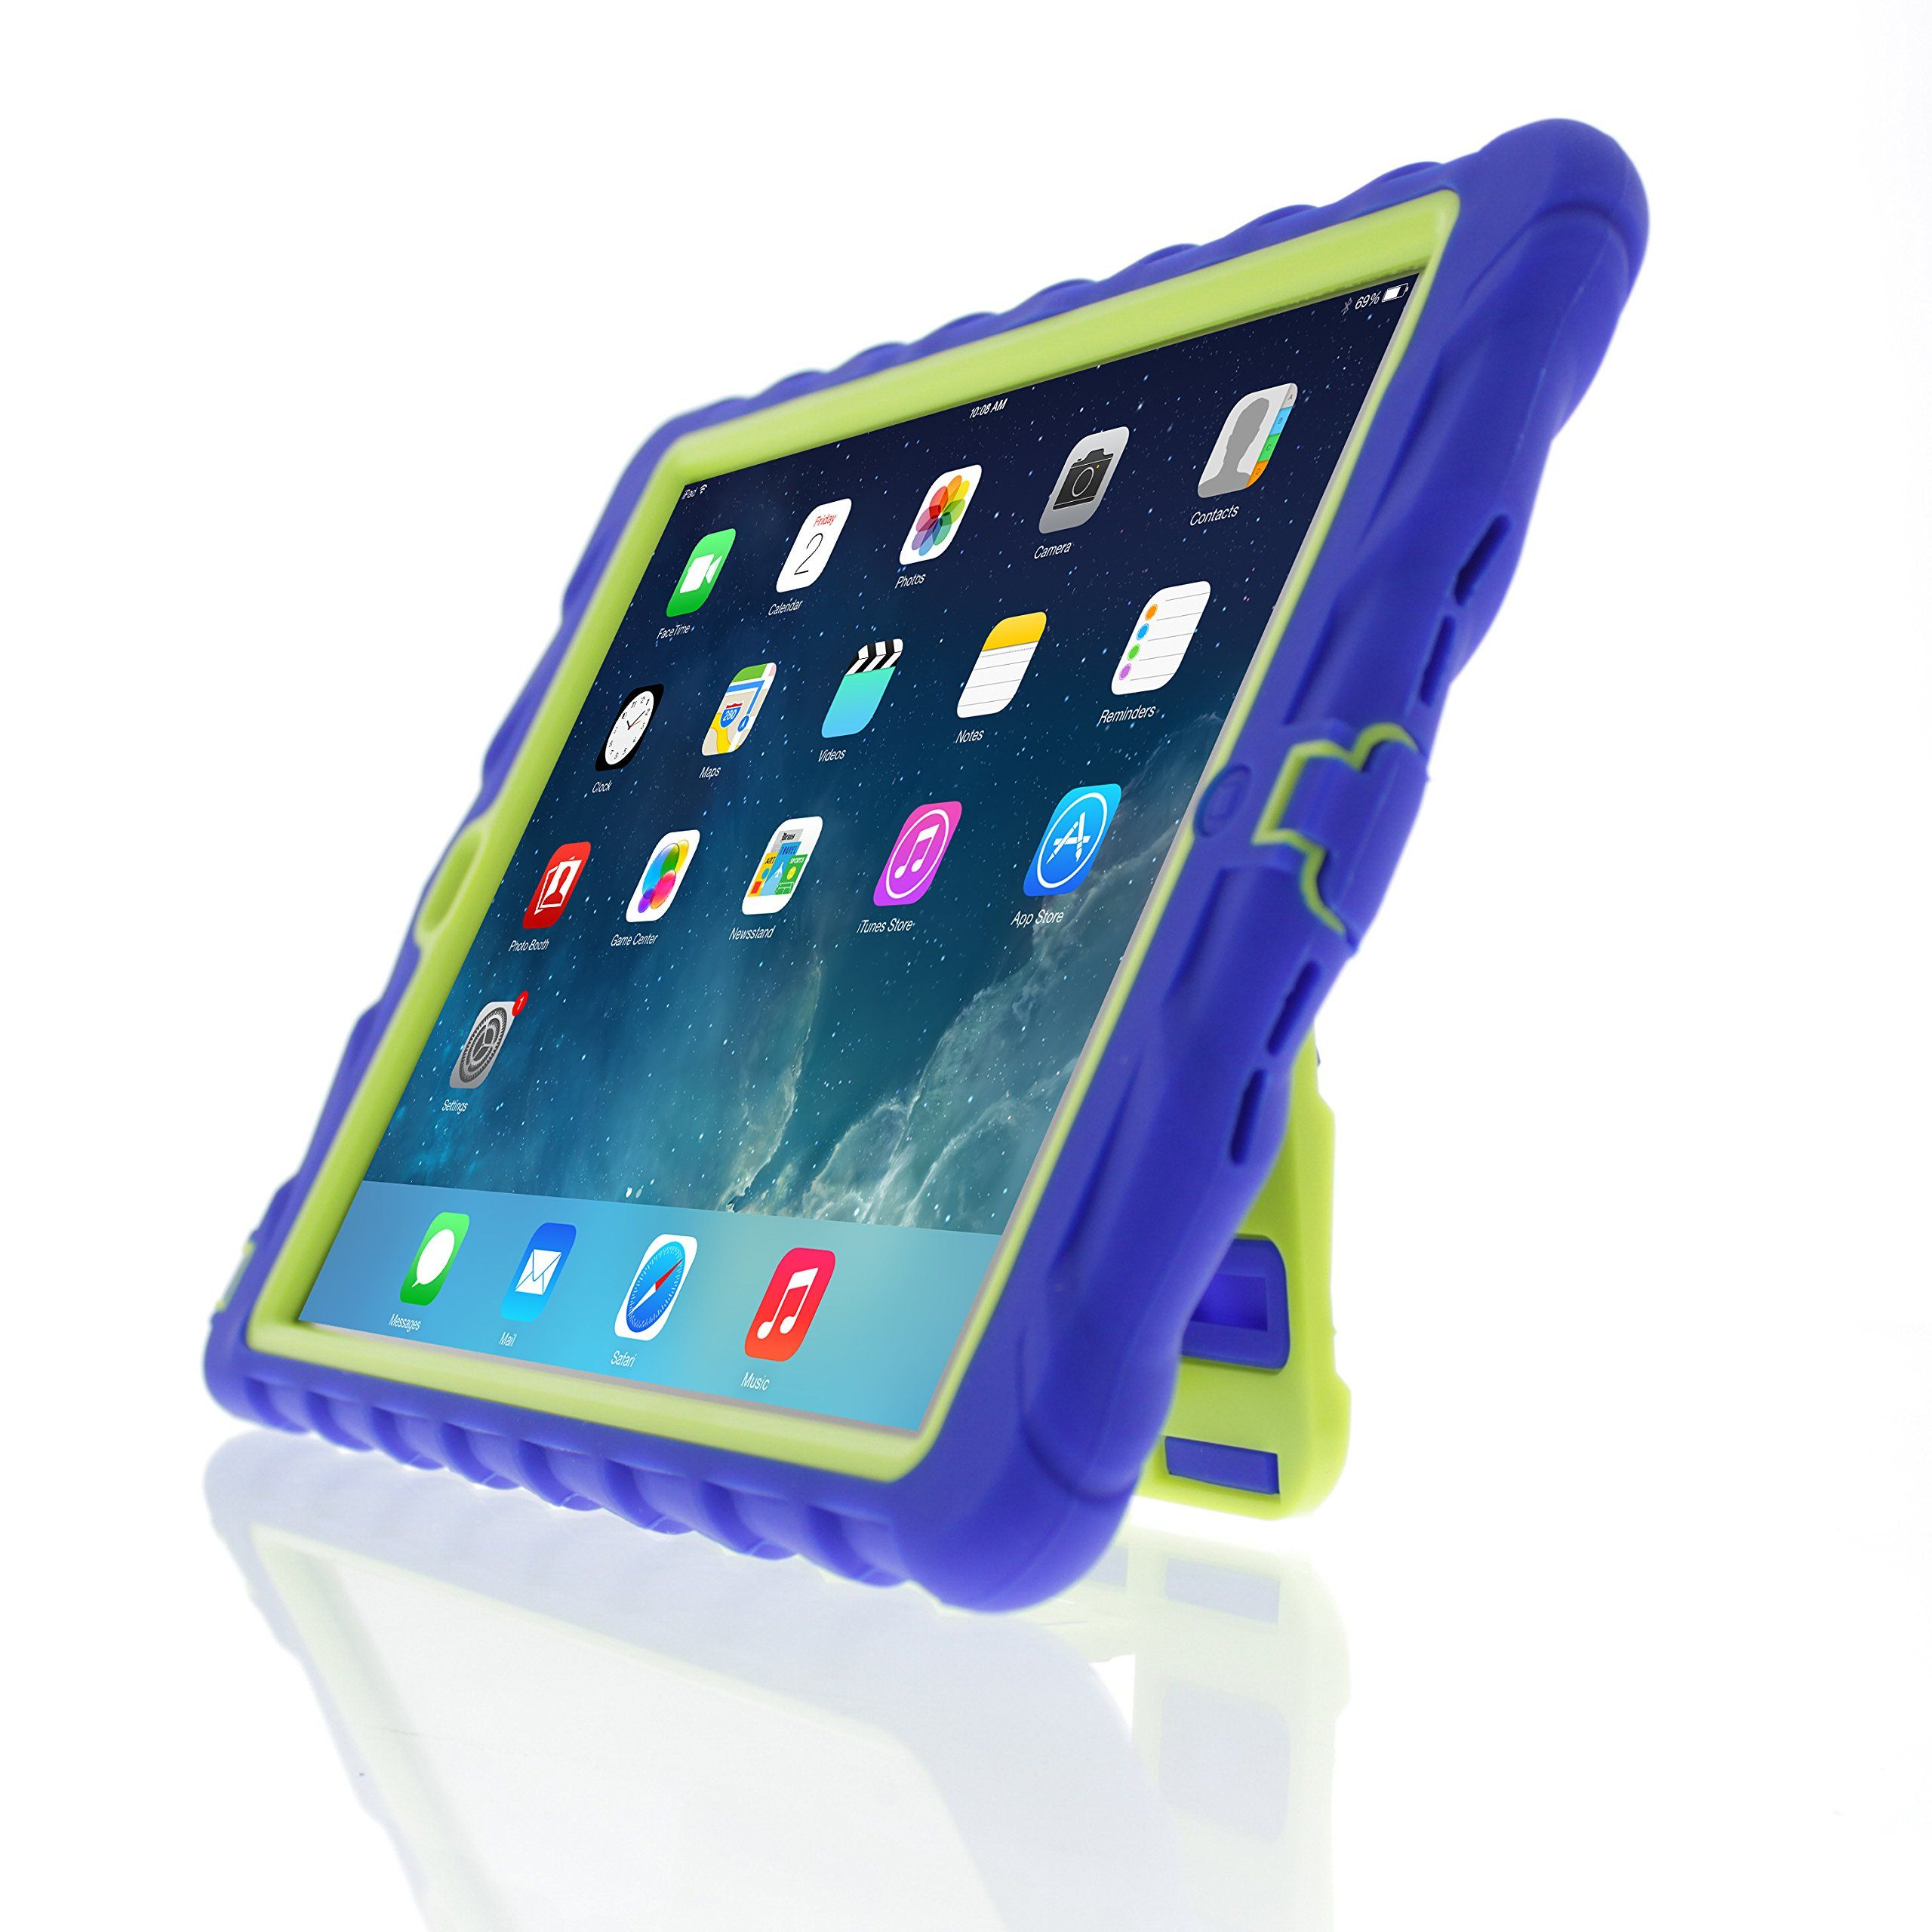 huge selection of 1232c 794f1 Gumdrop iPad Air Cases for Kids. Hideaway stand, built-in screen ...